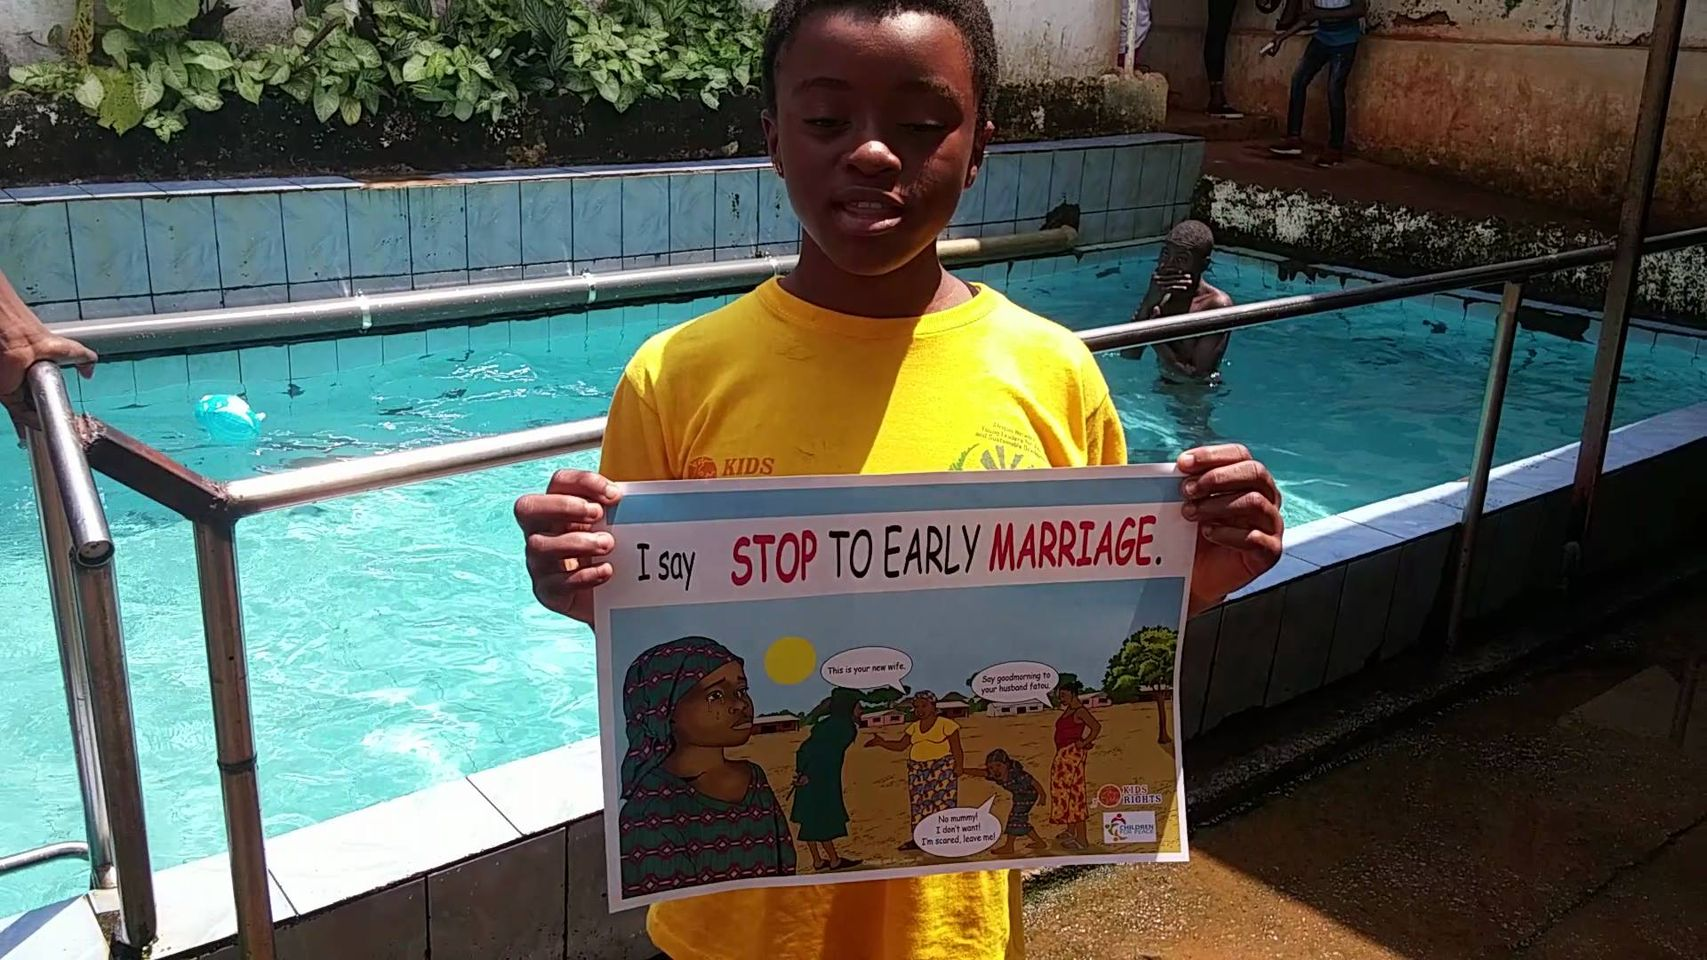 NO TO EARLY MARRIAGE AMONG CHILDREN